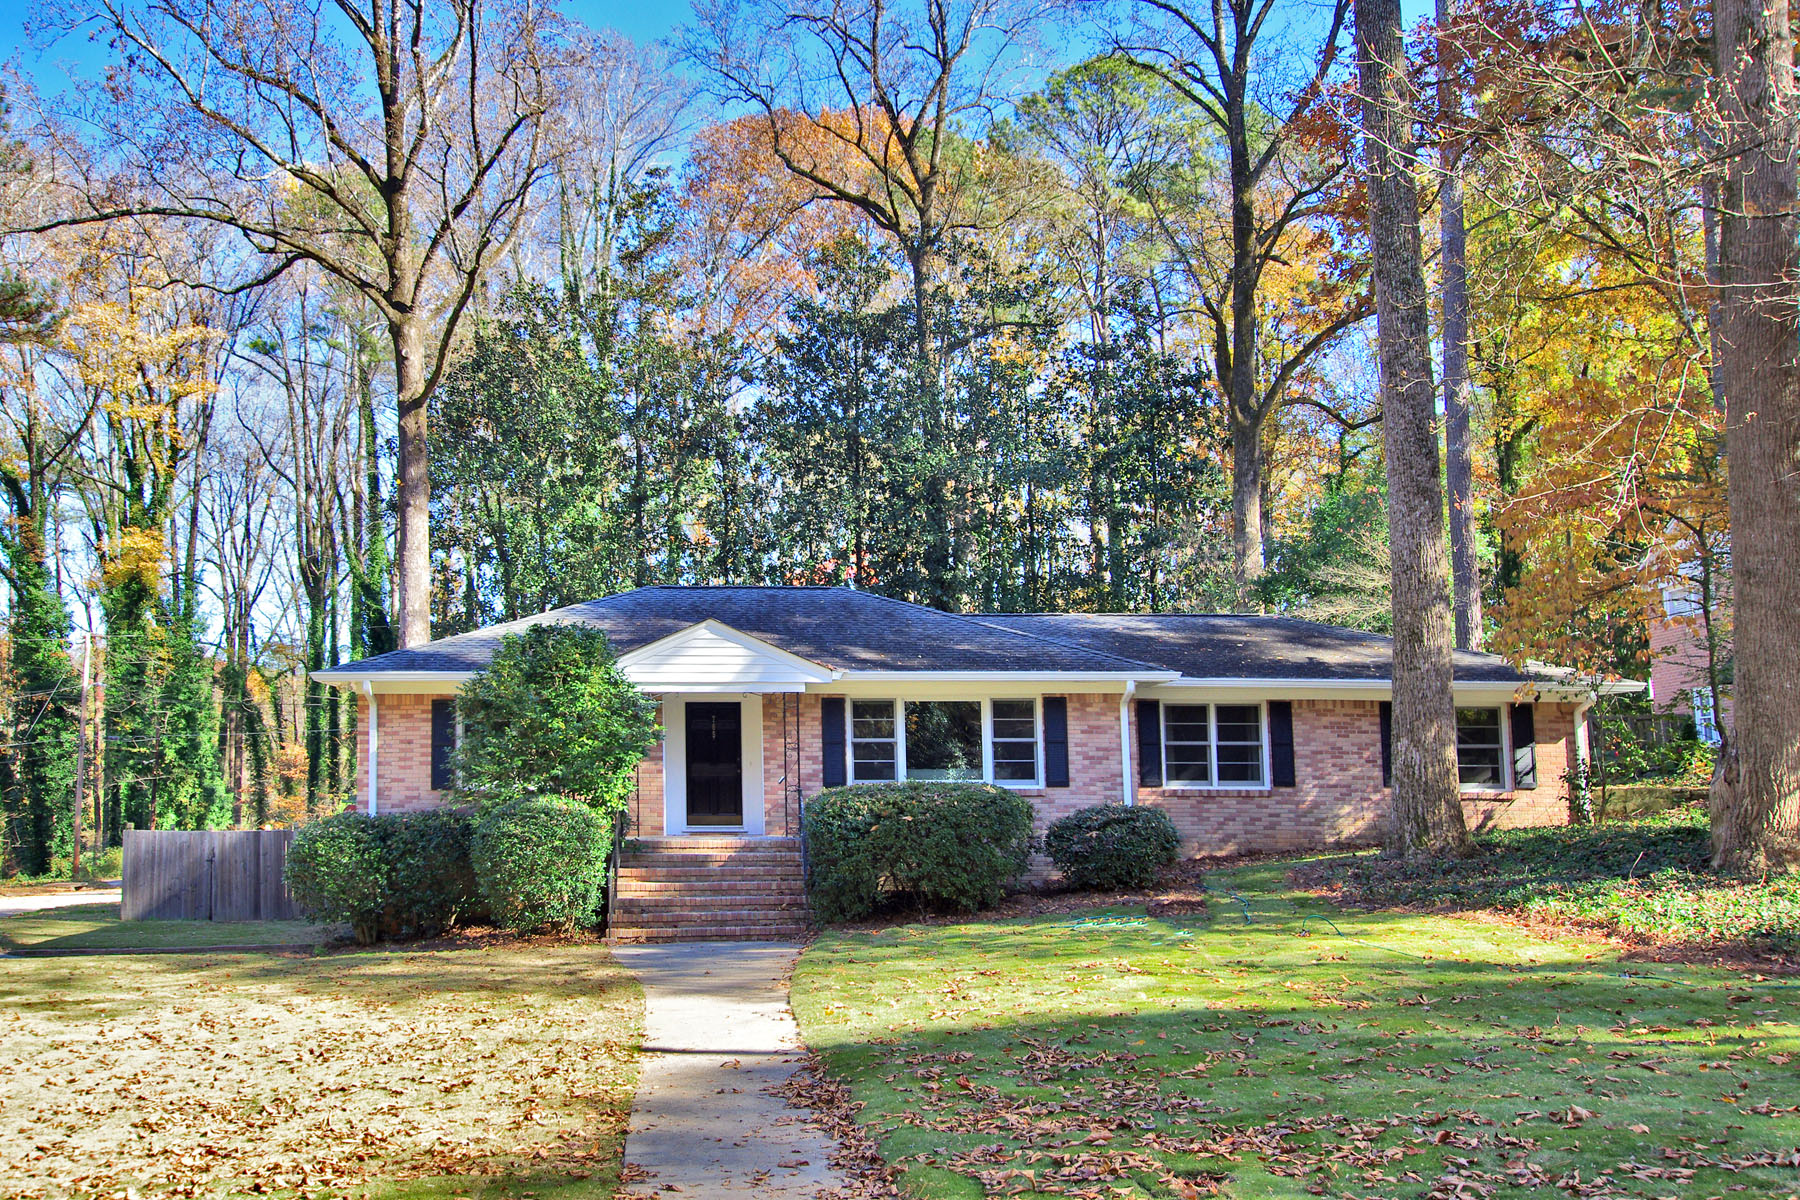 Single Family Home for Sale at Newly Updated Spacious Home in Druid Hills 765 Briar Park Ct Atlanta, Georgia 30306 United States